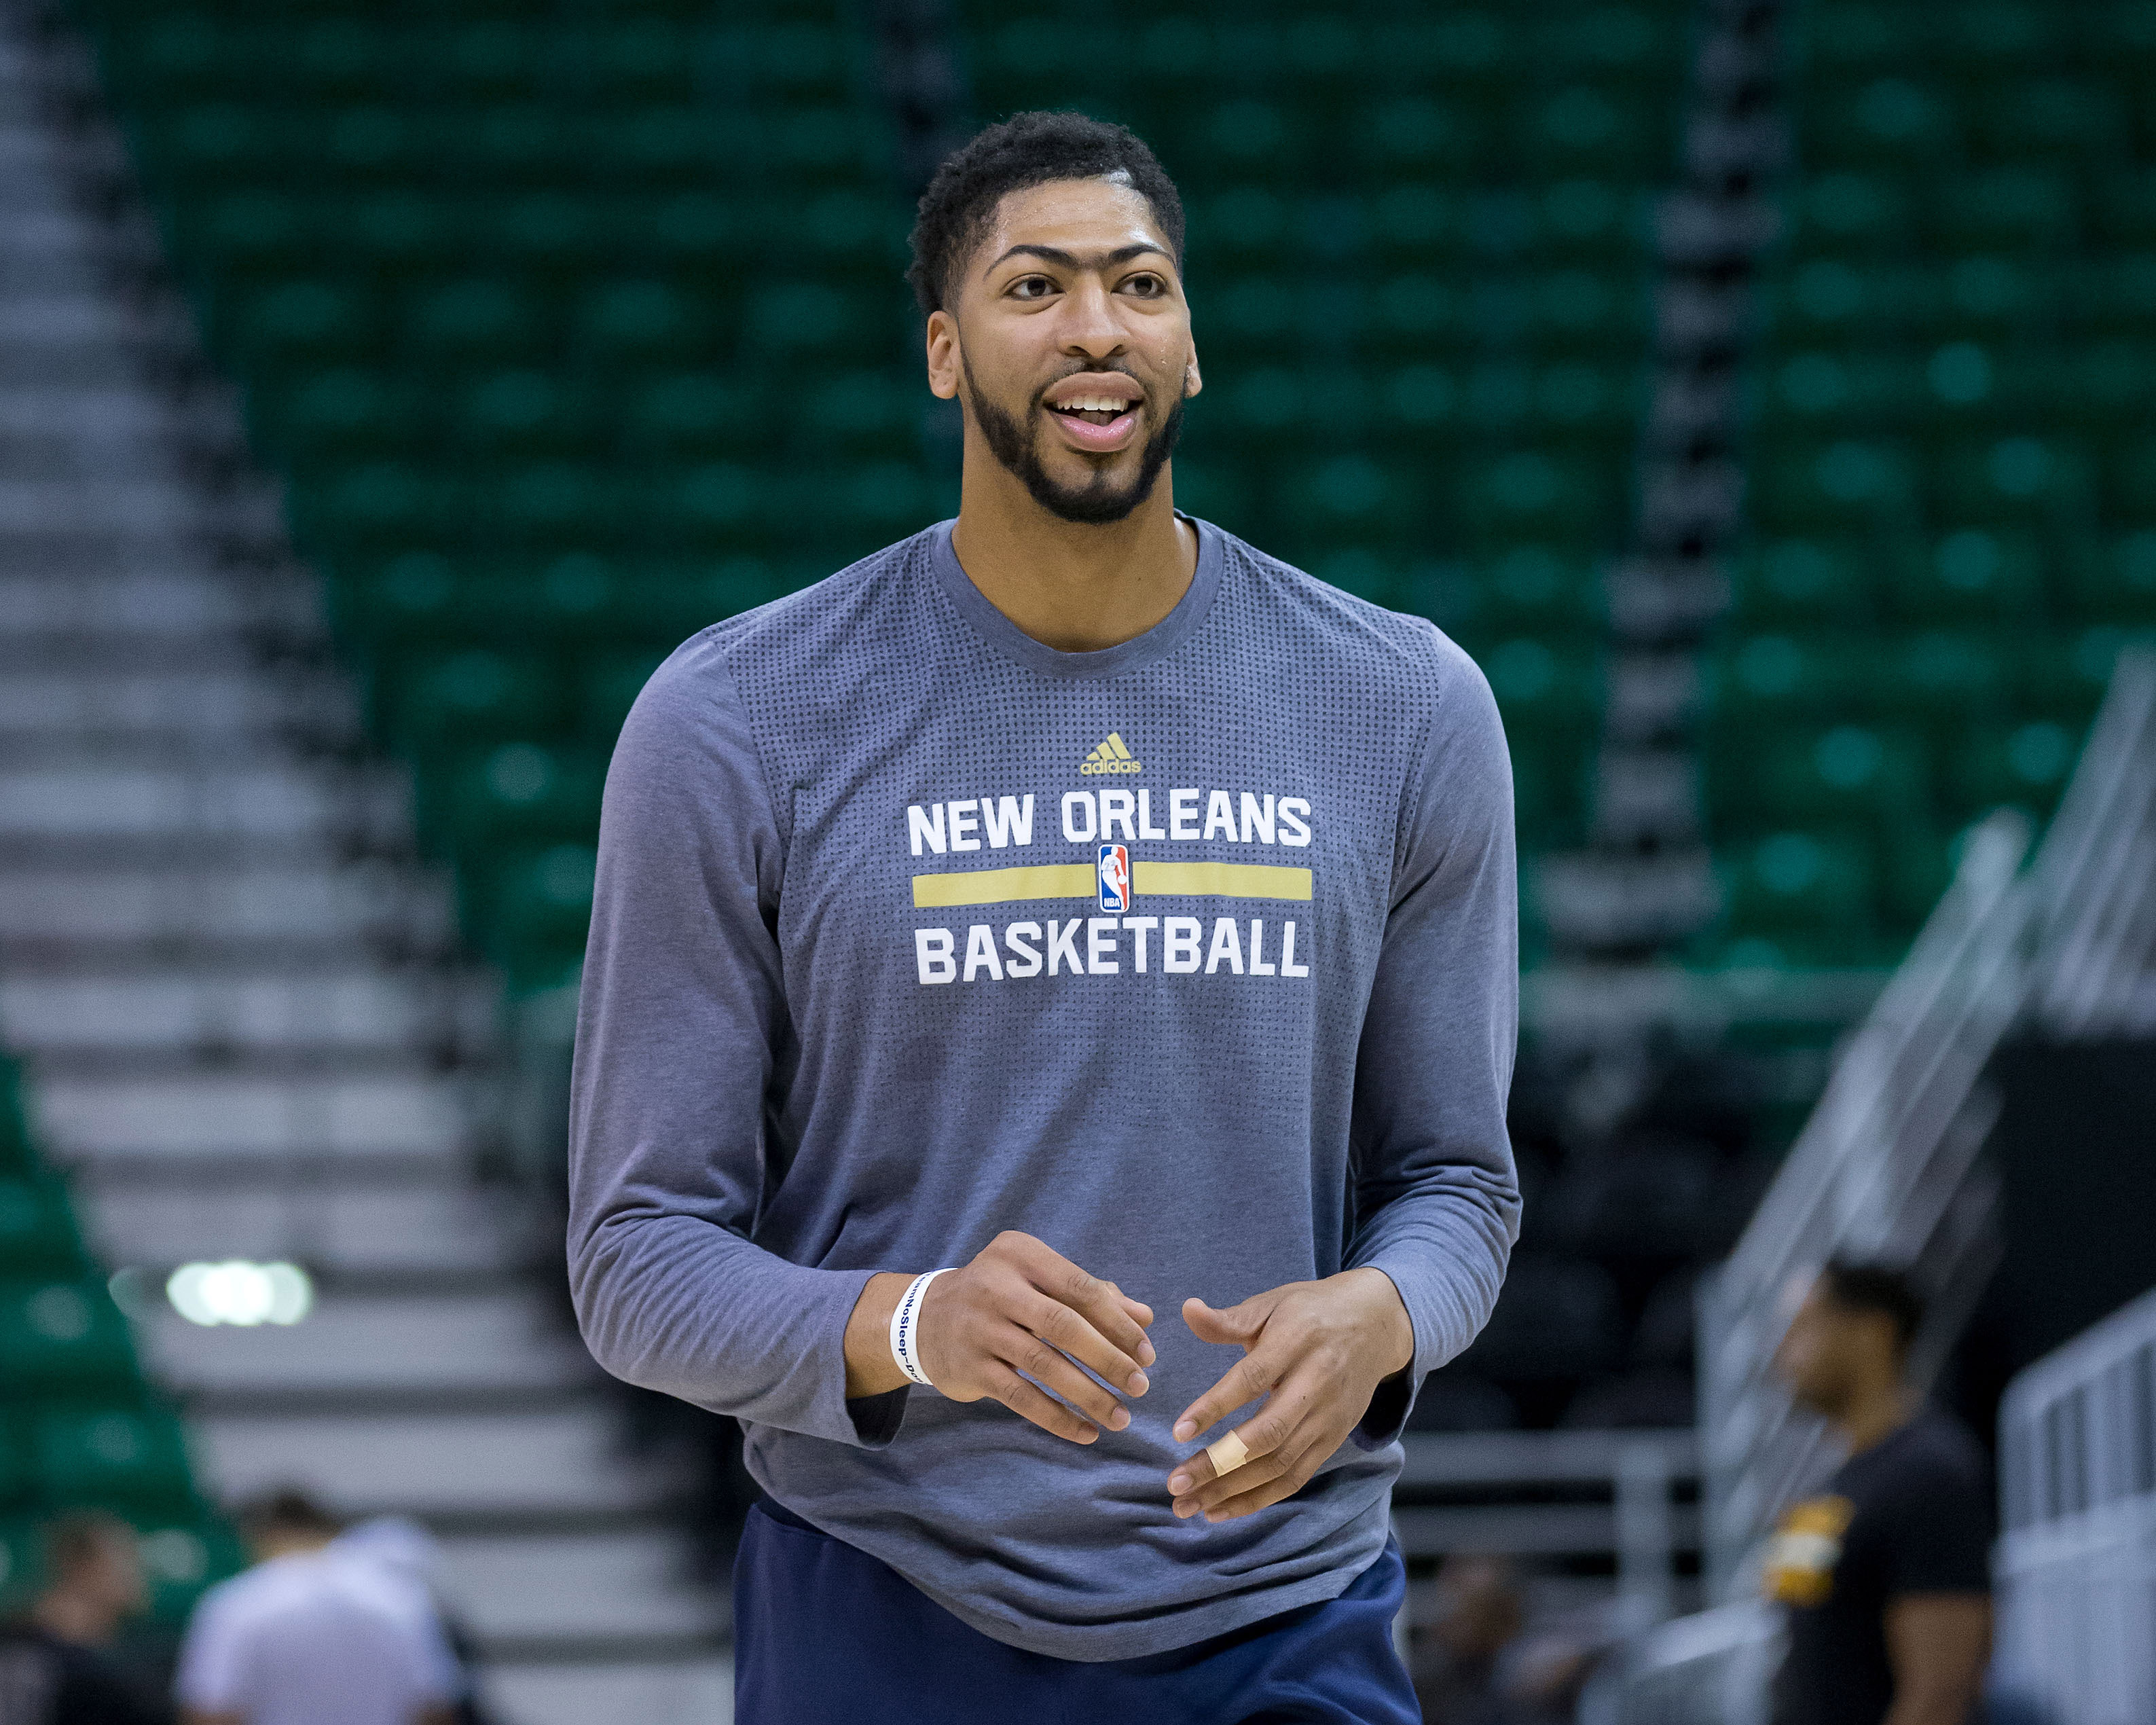 9975934-nba-new-orleans-pelicans-at-utah-jazz